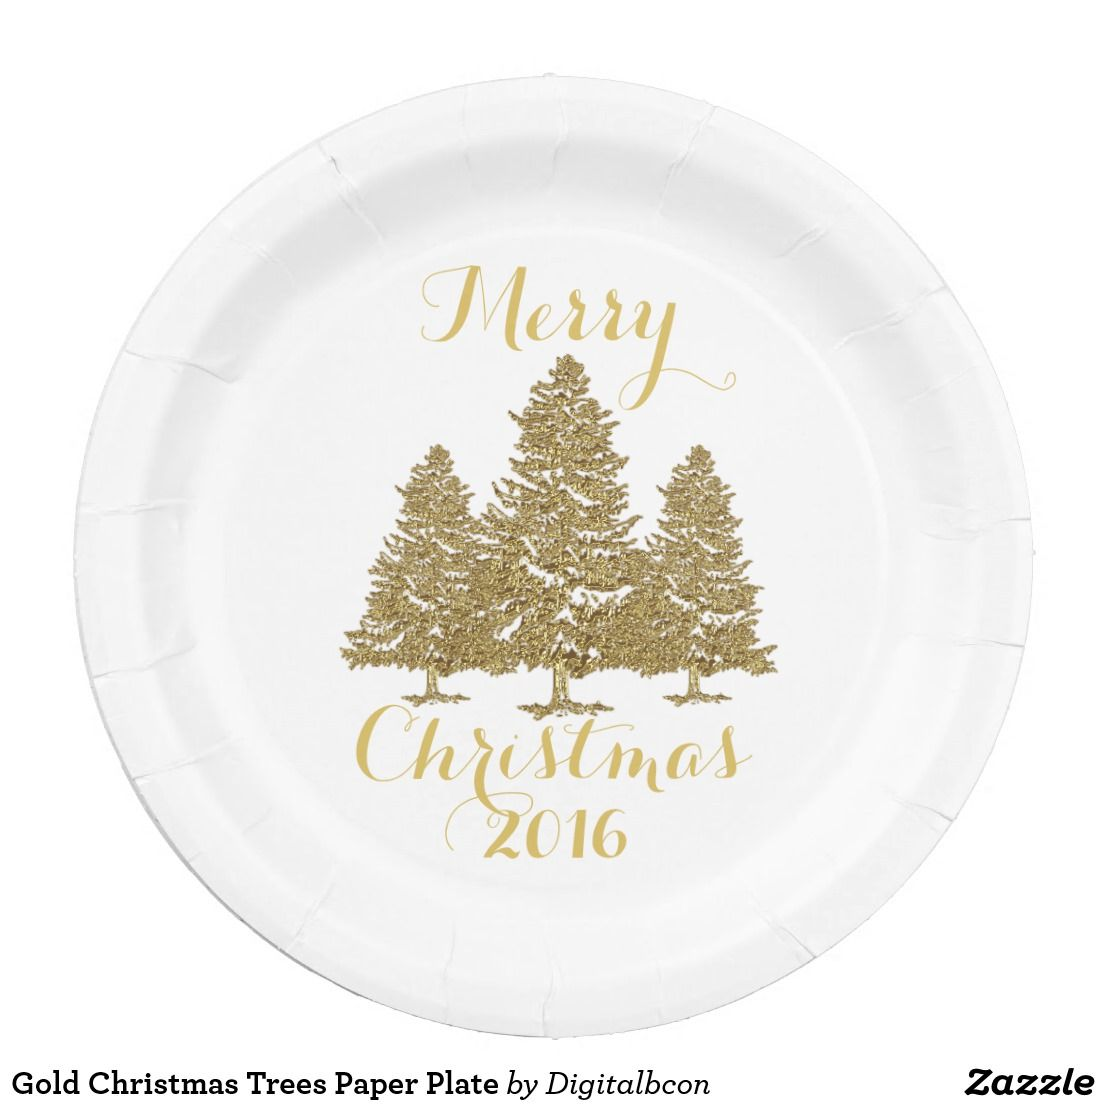 Gold Christmas Trees Paper Plate Zazzle Com Gold Christmas Tree Gold Christmas Christmas Paper Plates